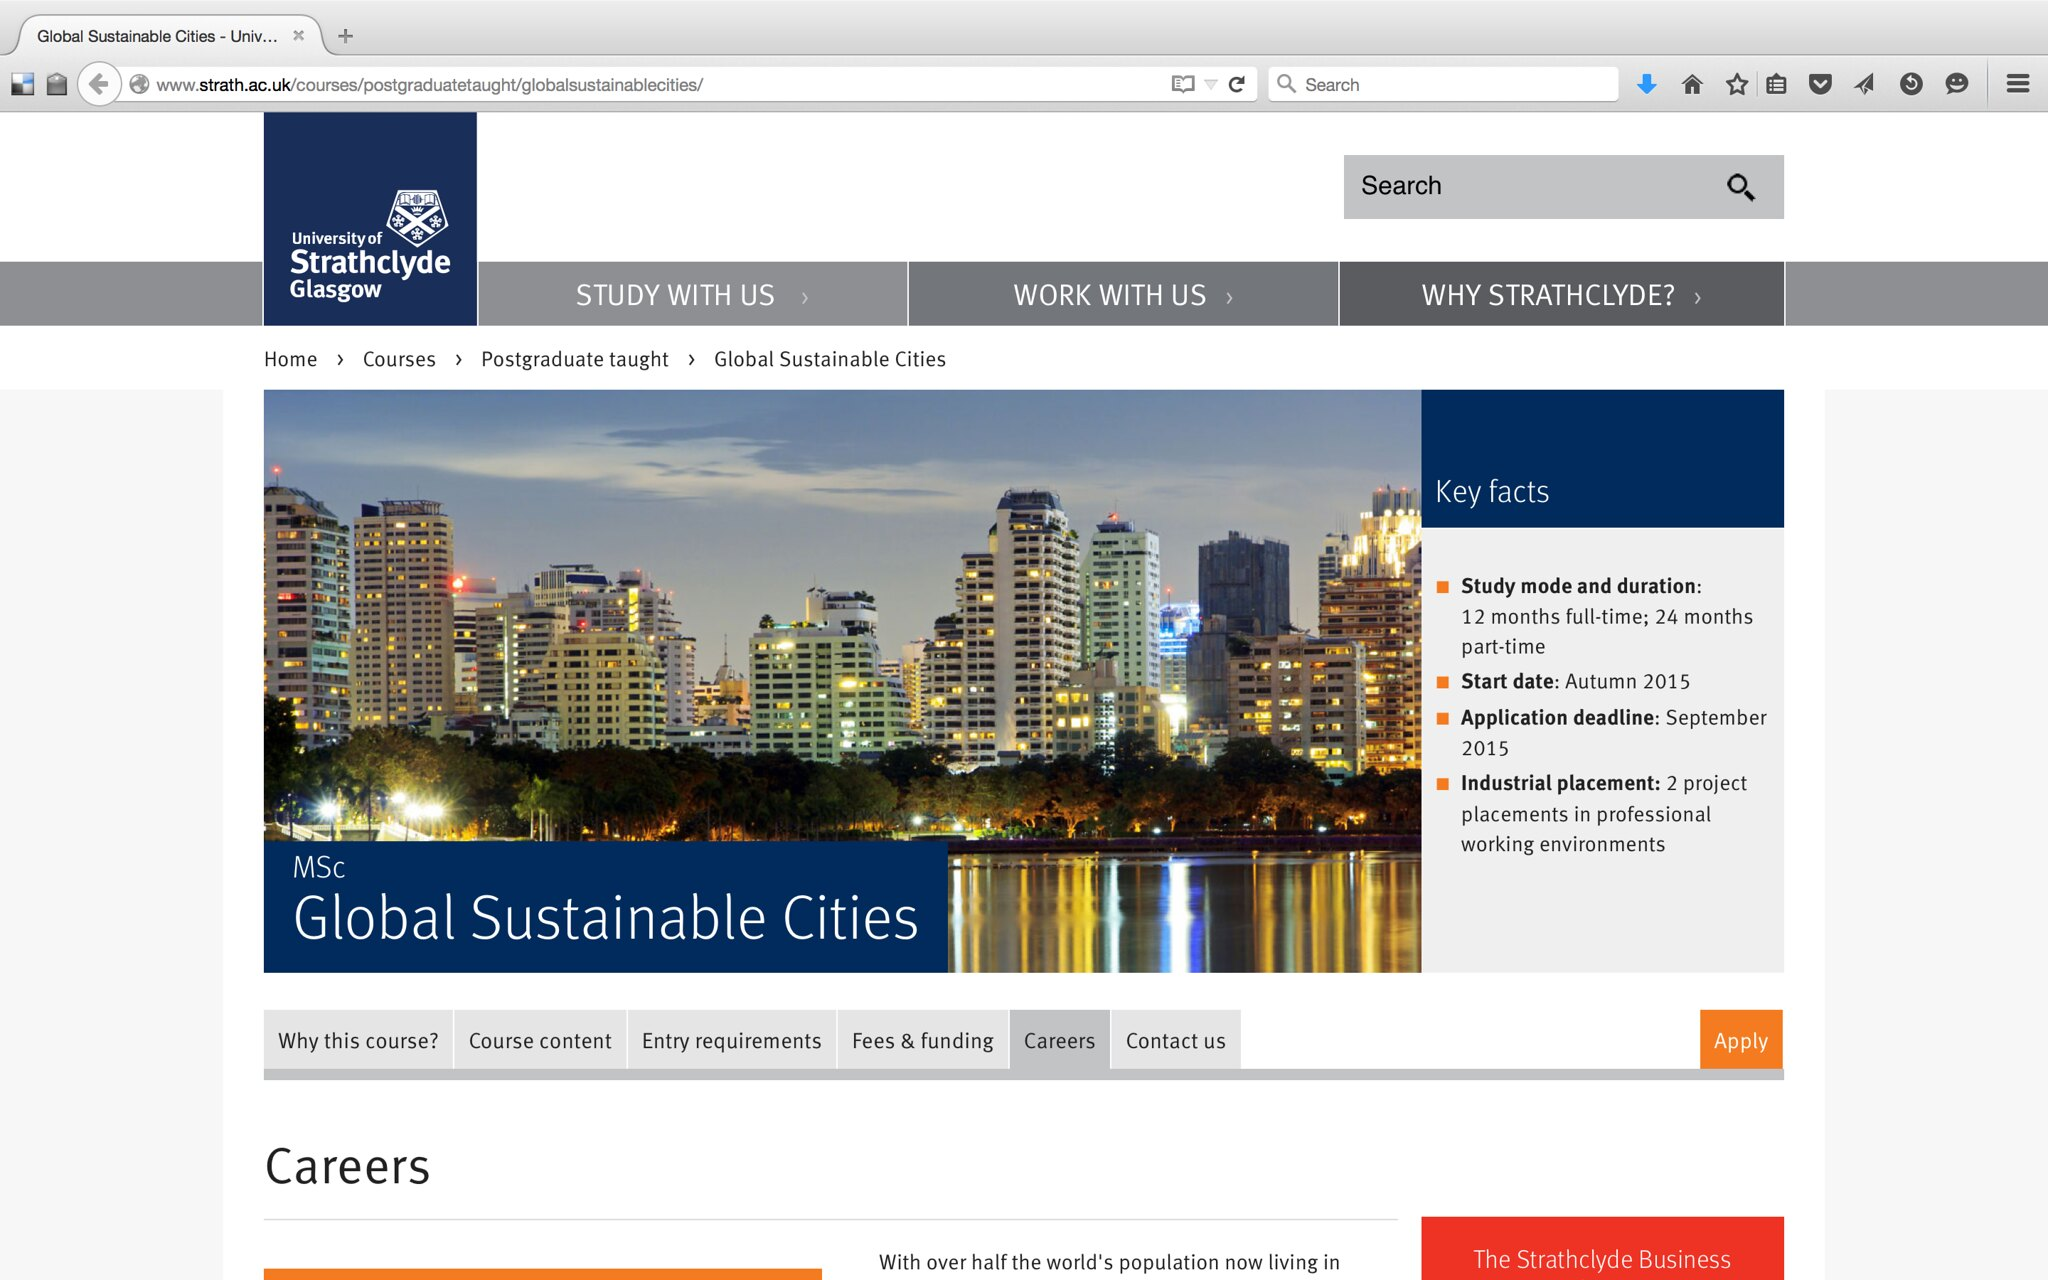 Lectureship at the MSc Master in Global Sustainable Cities